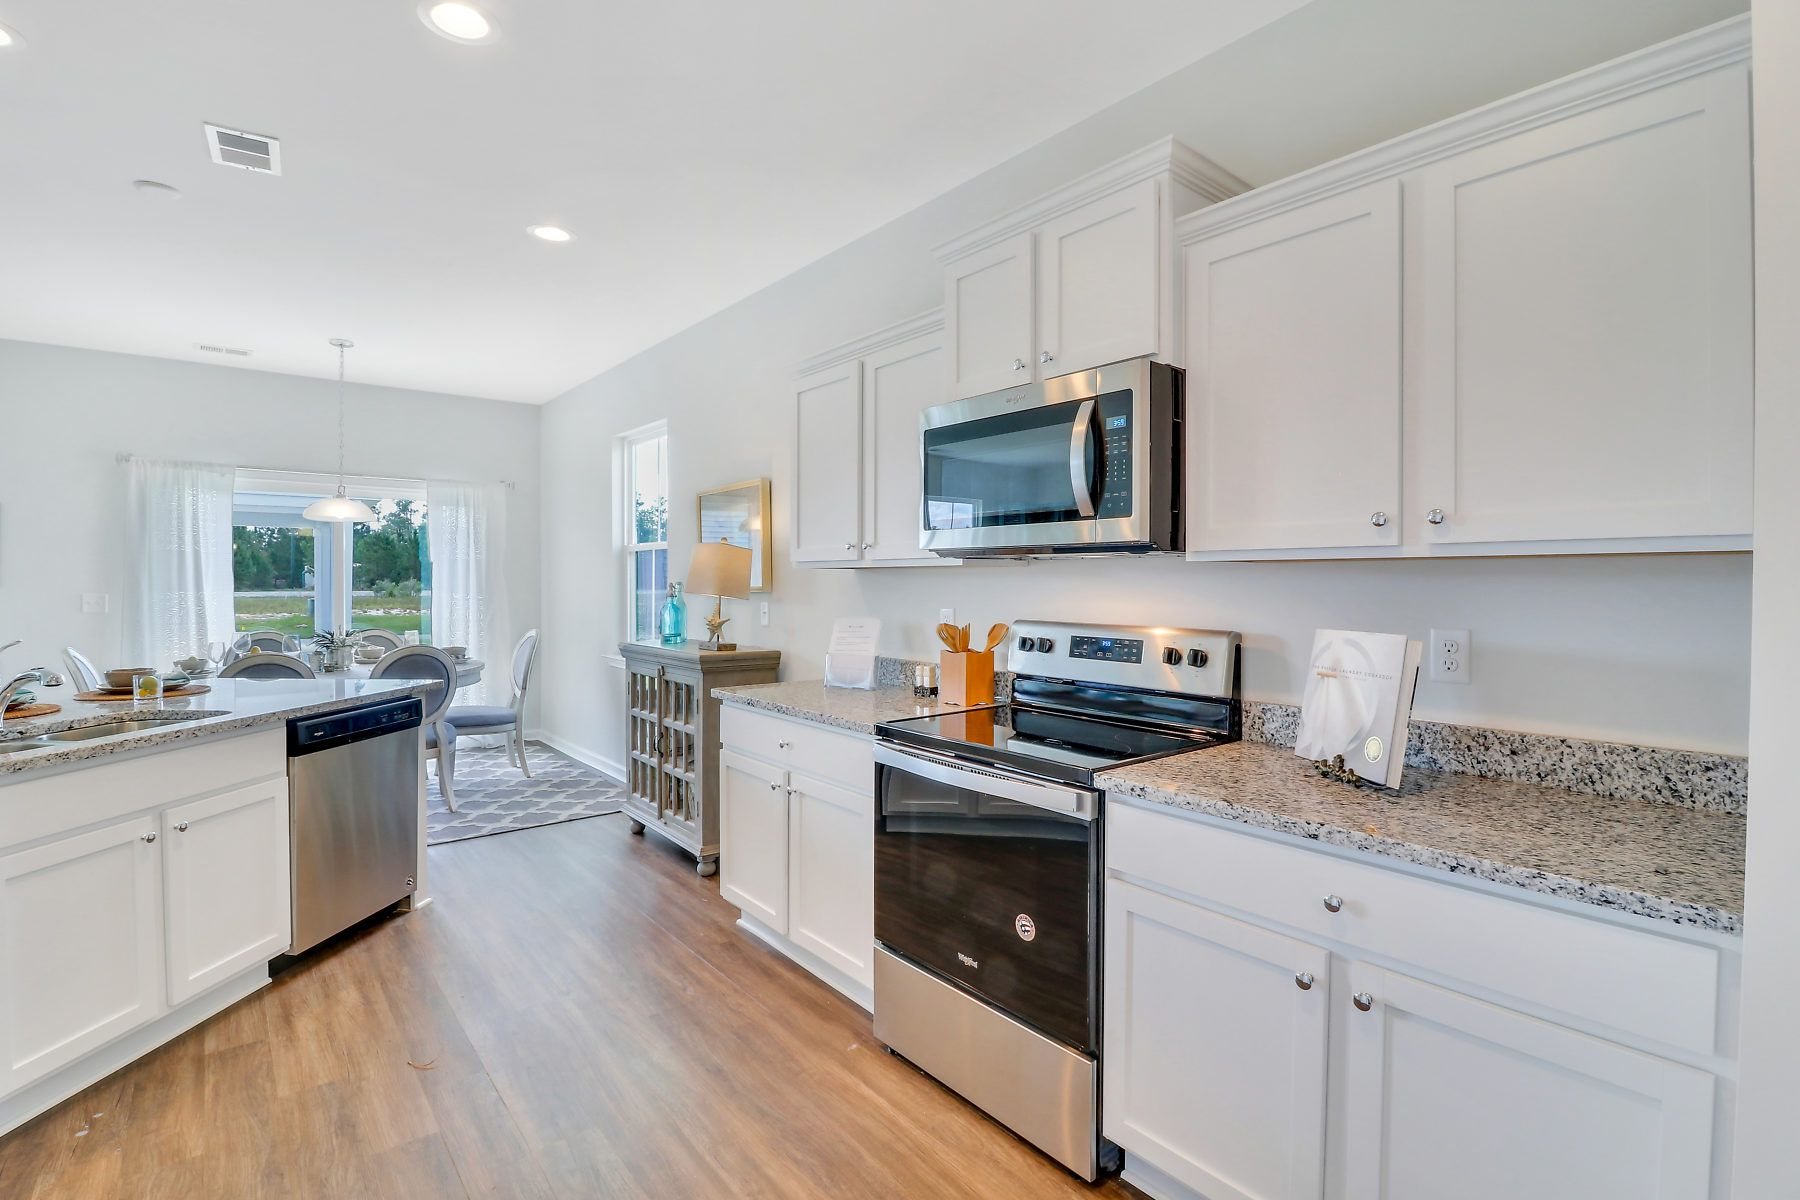 Kitchen featured in The Crawford II By Village Park Homes in Hilton Head, SC